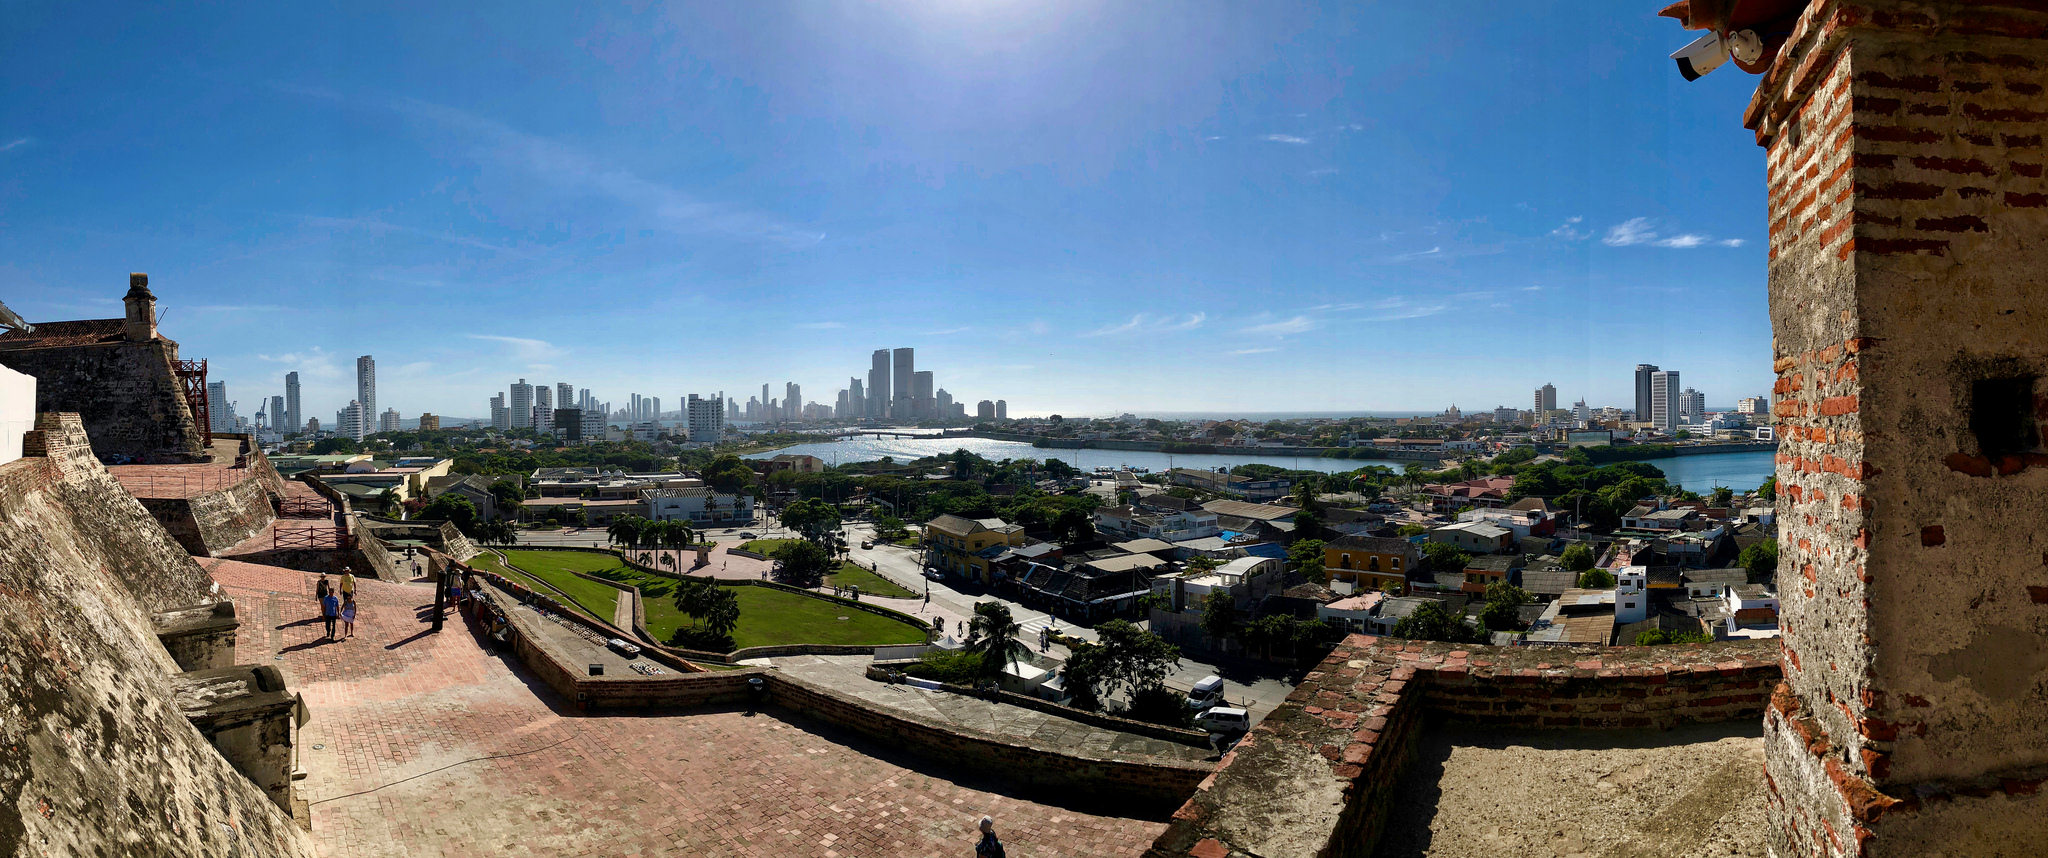 Cartagena in Colombia itinerary